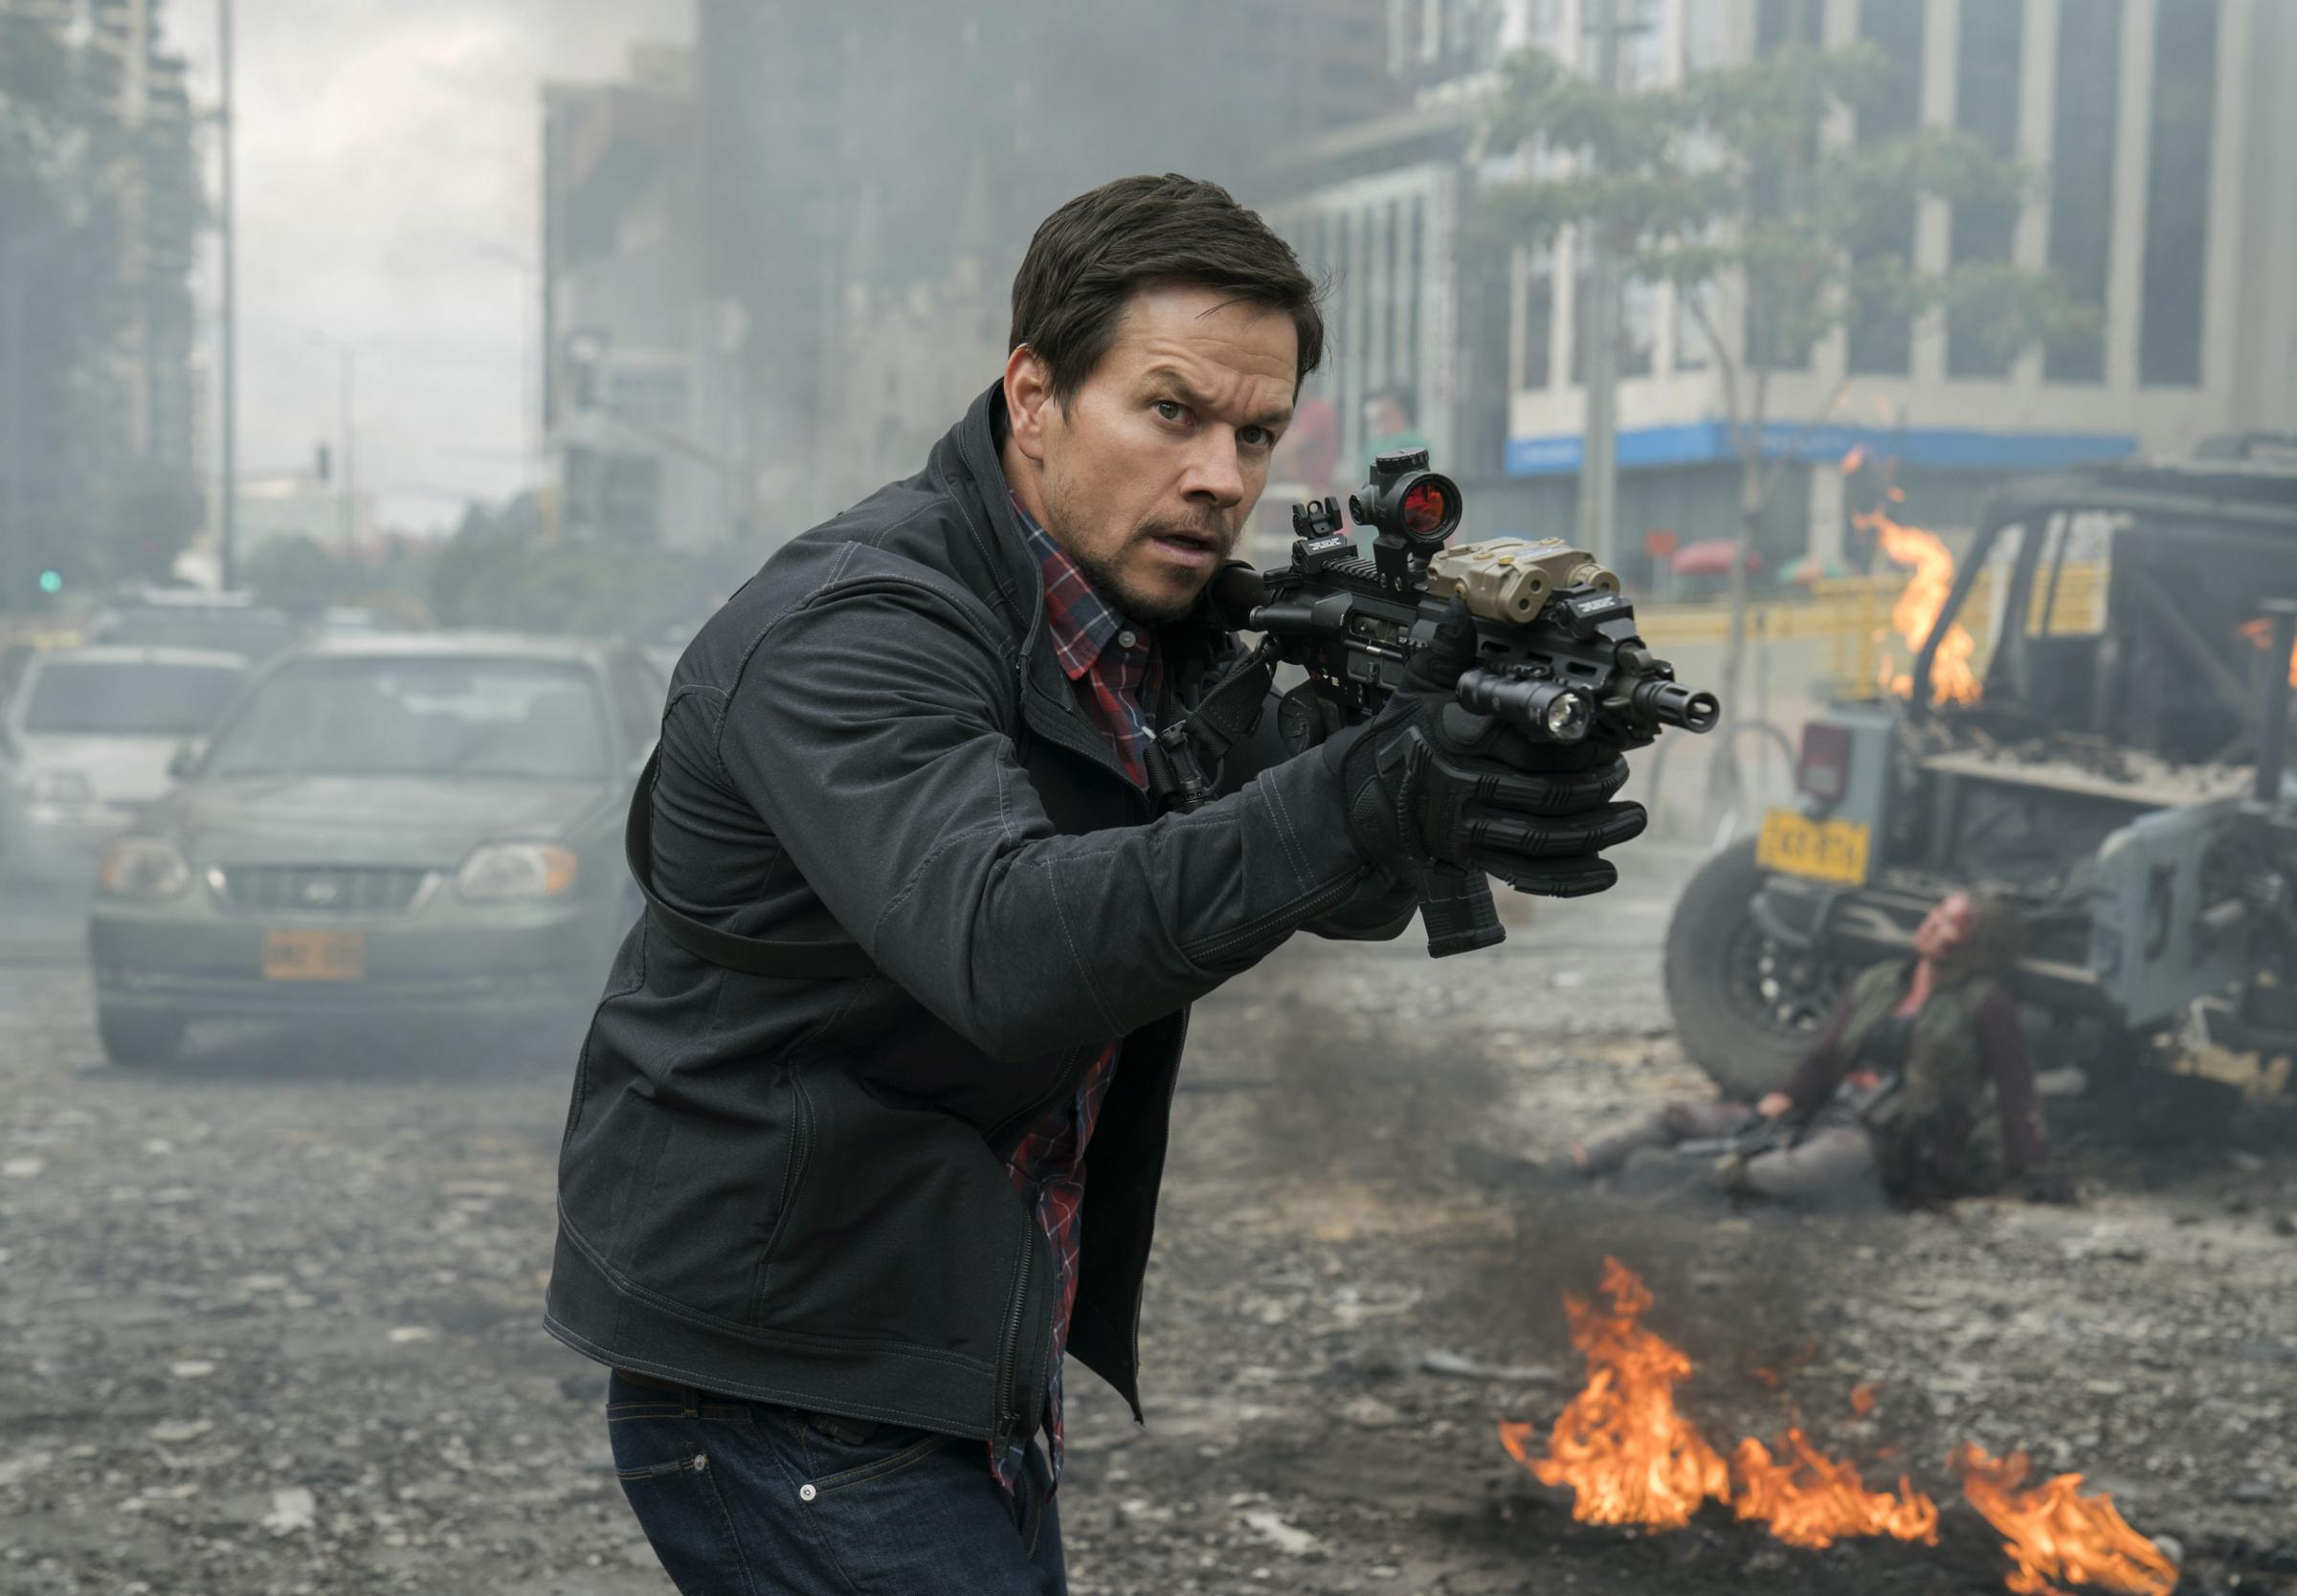 Mark Wahlberg stars as Jimmy Silva, leader of a secret command unit